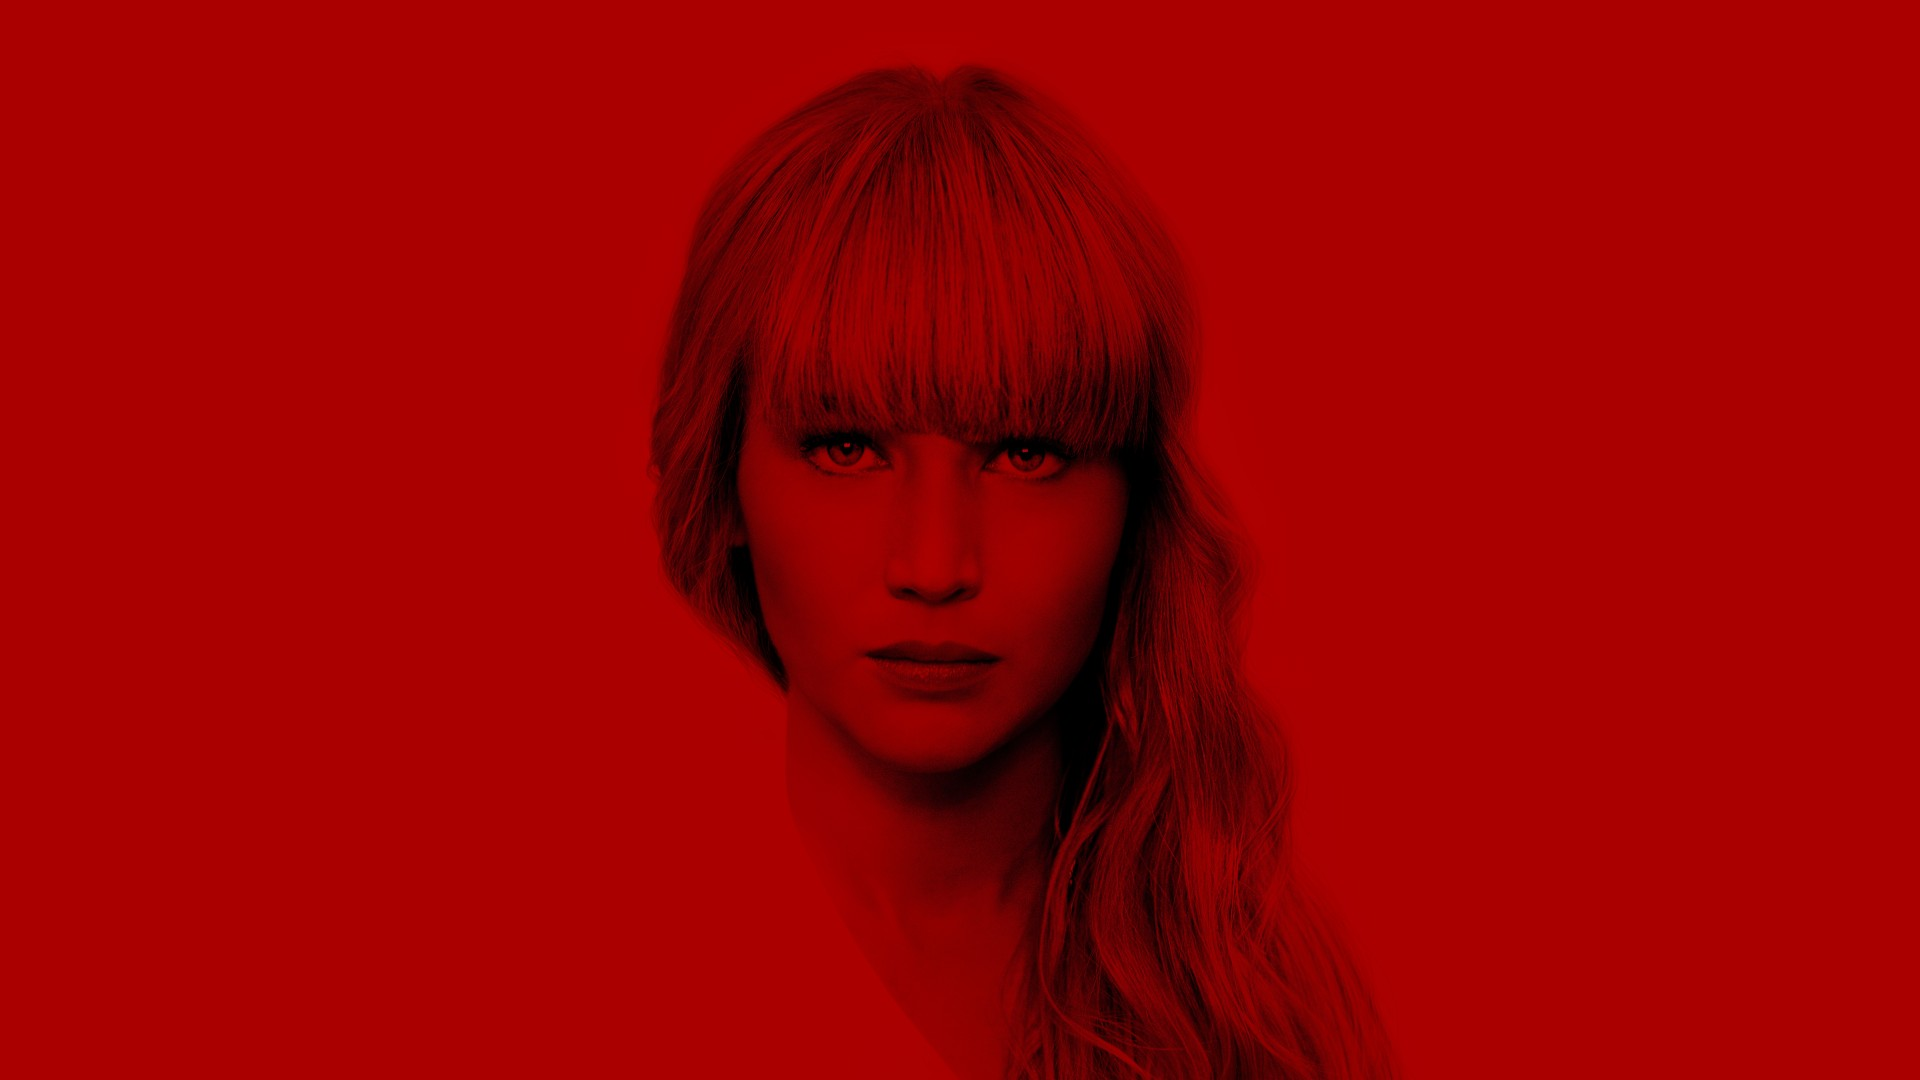 red-sparrow-1920x1080-jennifer-lawrence-2018-11925